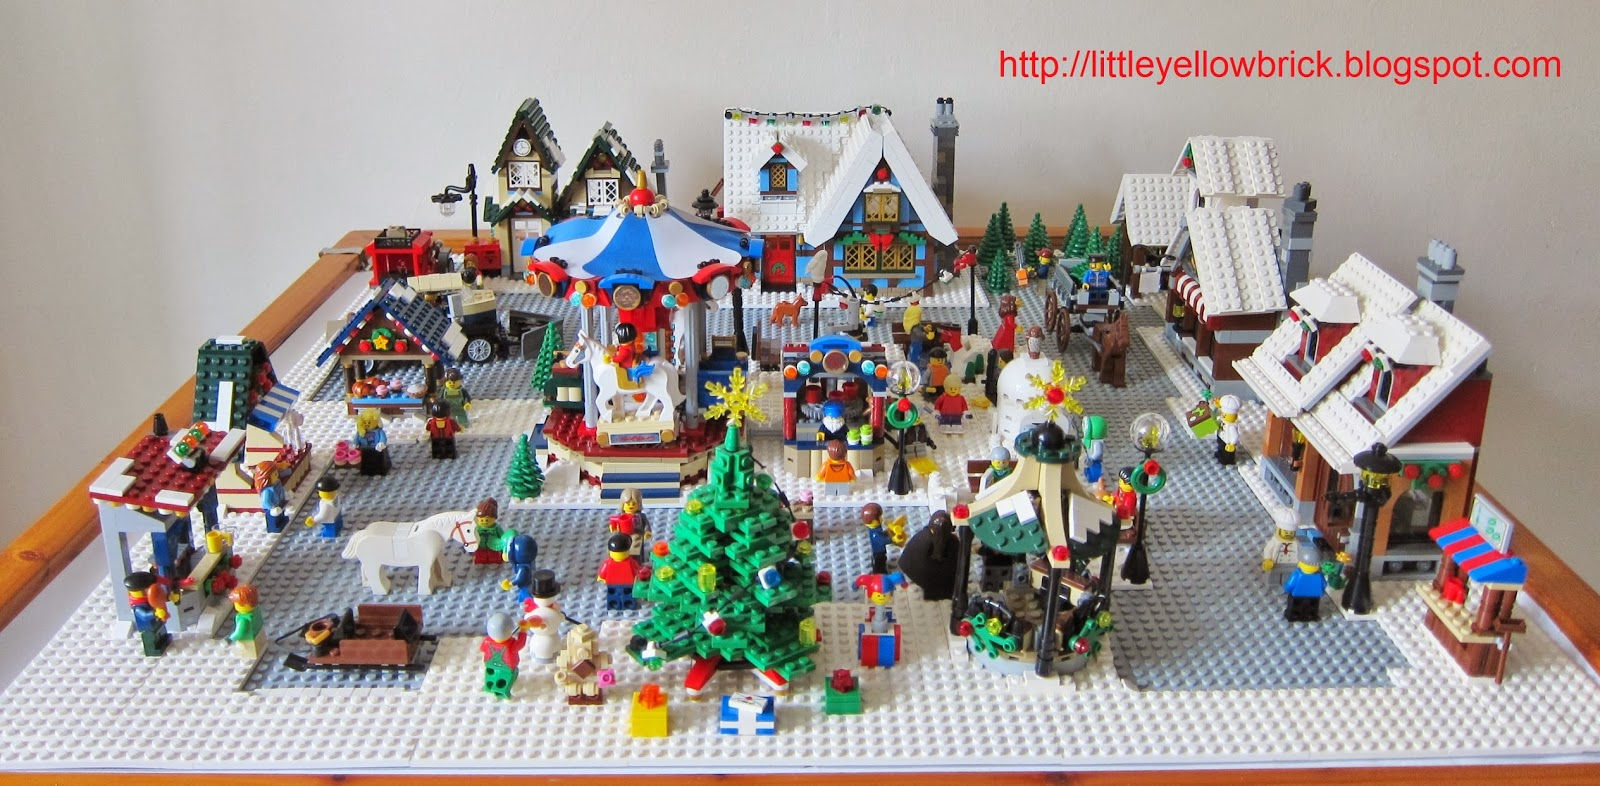 little yellow brick a lego blog our lego winter village town moc 10199 winter village toy shop 10216 winter village bakery 10222 winter village post